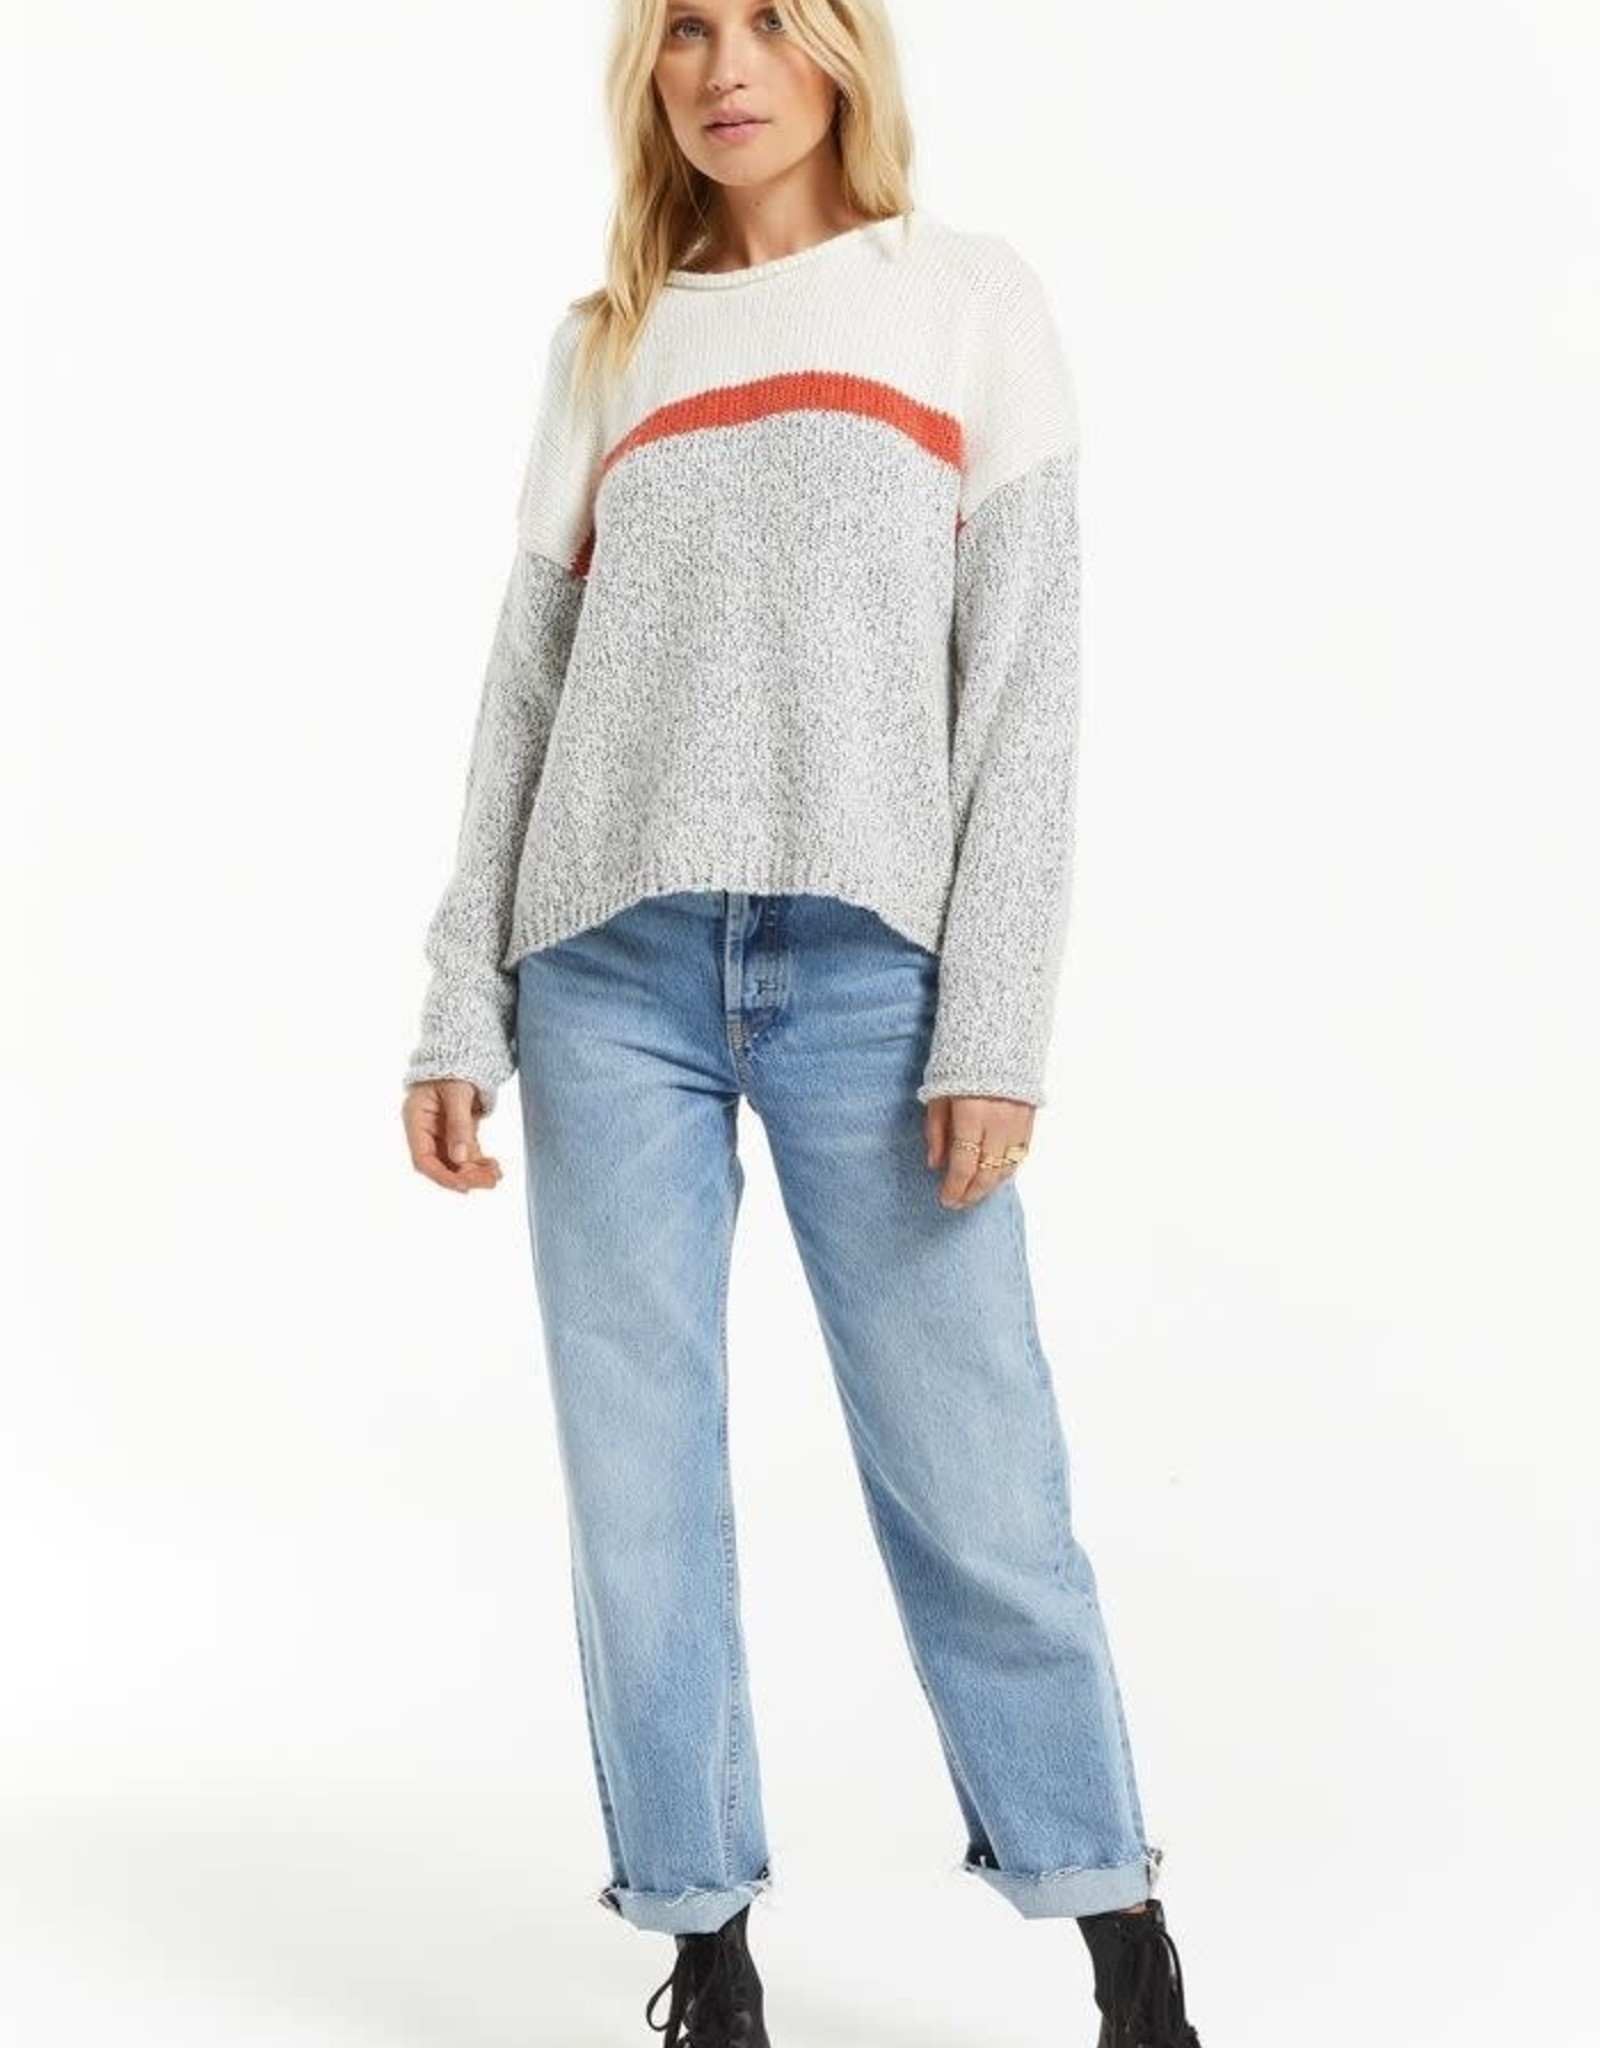 Z Supply Kennedy Colour Block Sweater